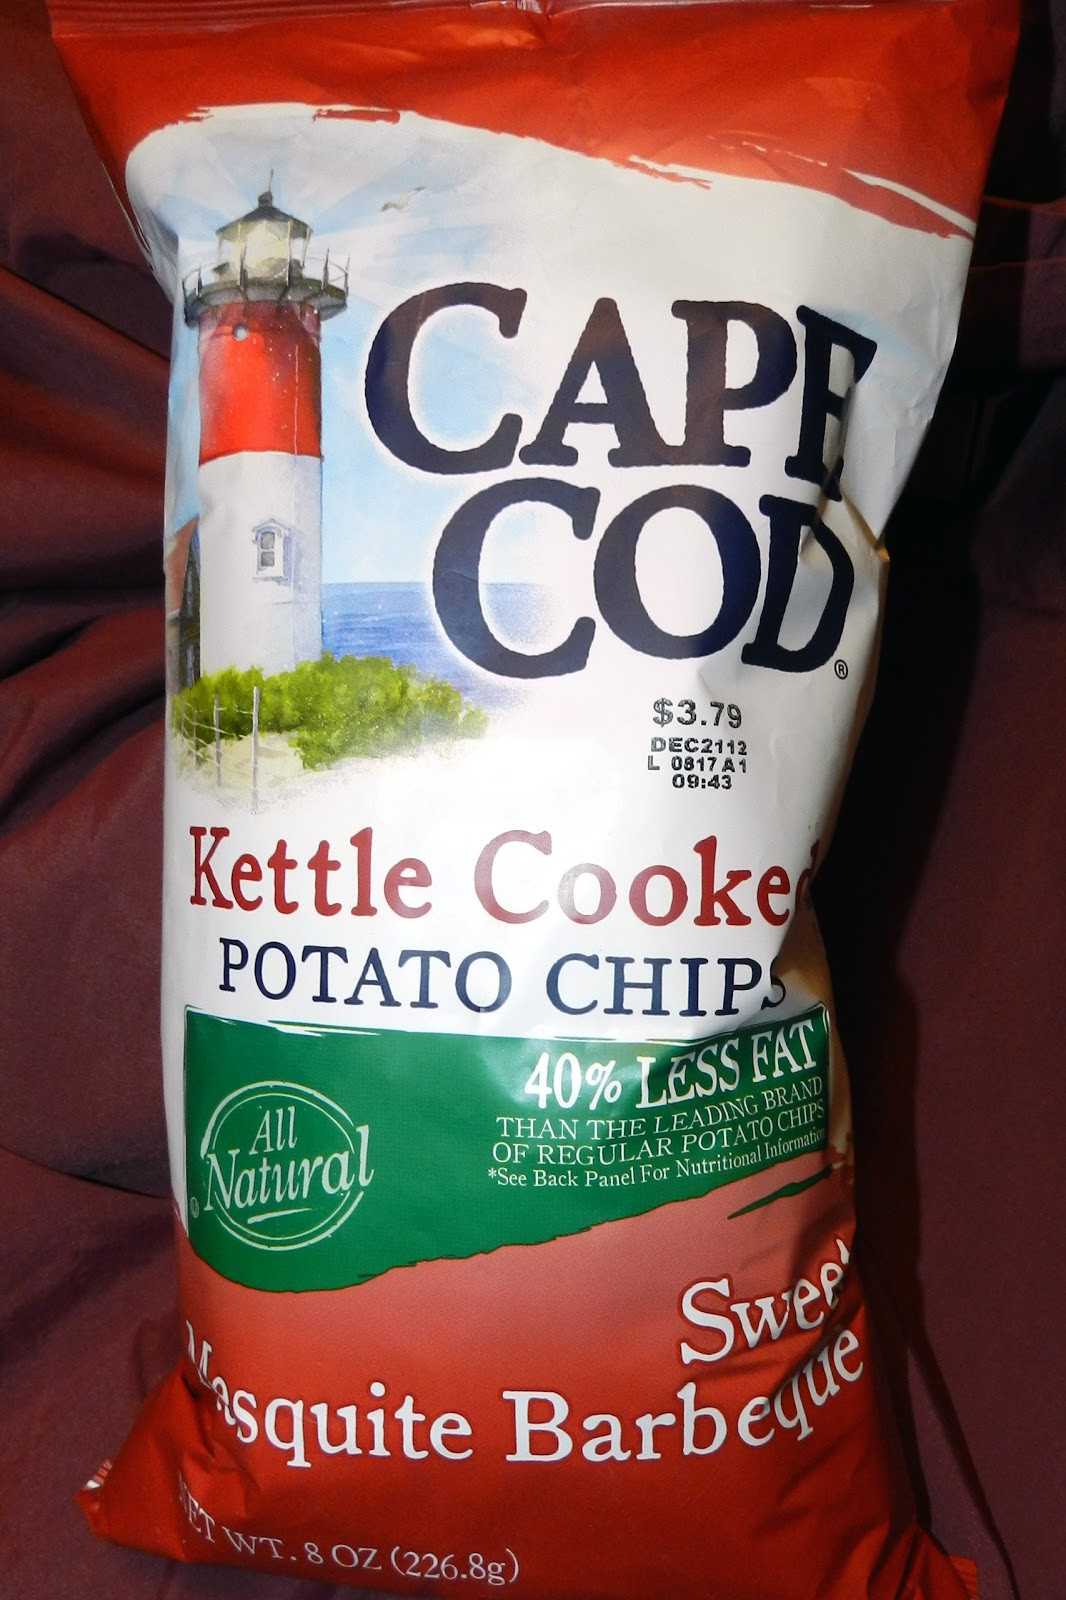 Are Potato Chips Gluten Free  Gluten Free Brands Cape Cod Kettle Cooked Potato Chips